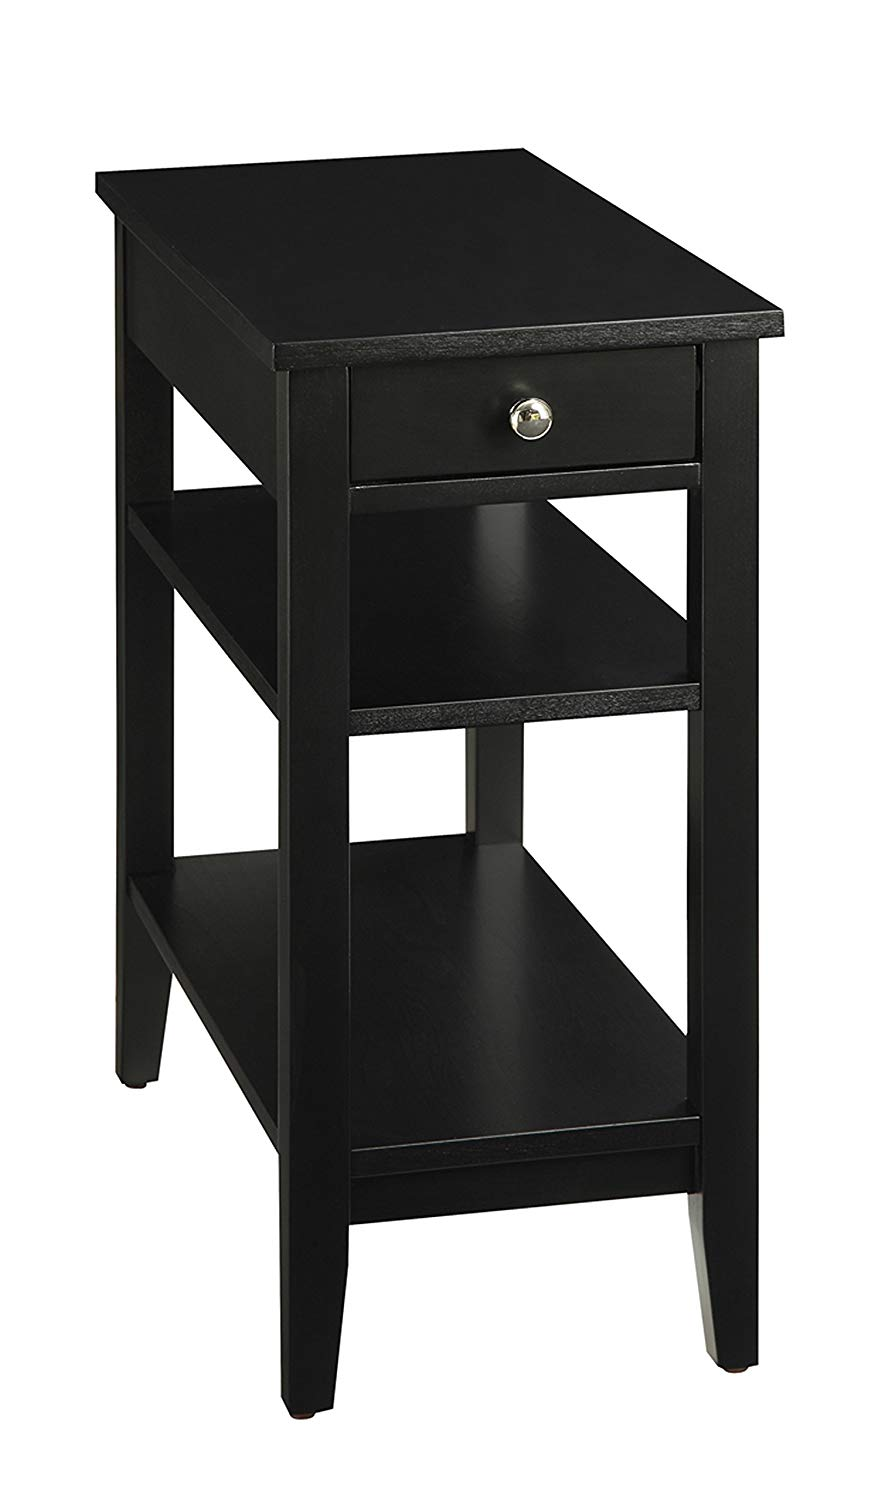 convenience concepts american heritage tier end table room essentials storage accent with drawer black kitchen dining vintage retro chairs wide side iron umbrella stand light